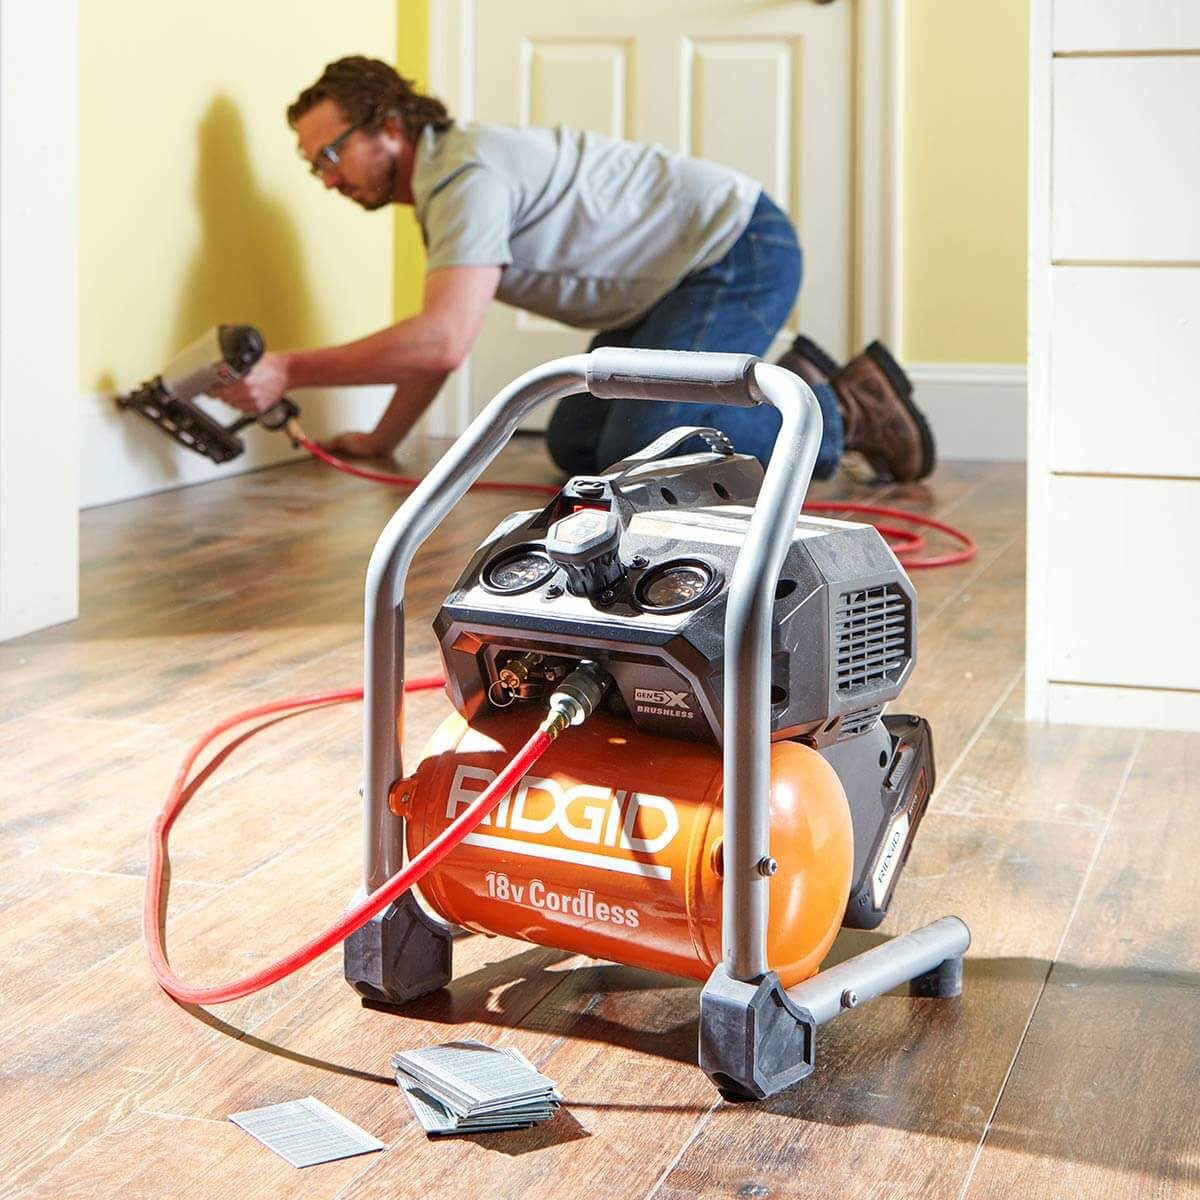 Ridgid Power Tool Warranty